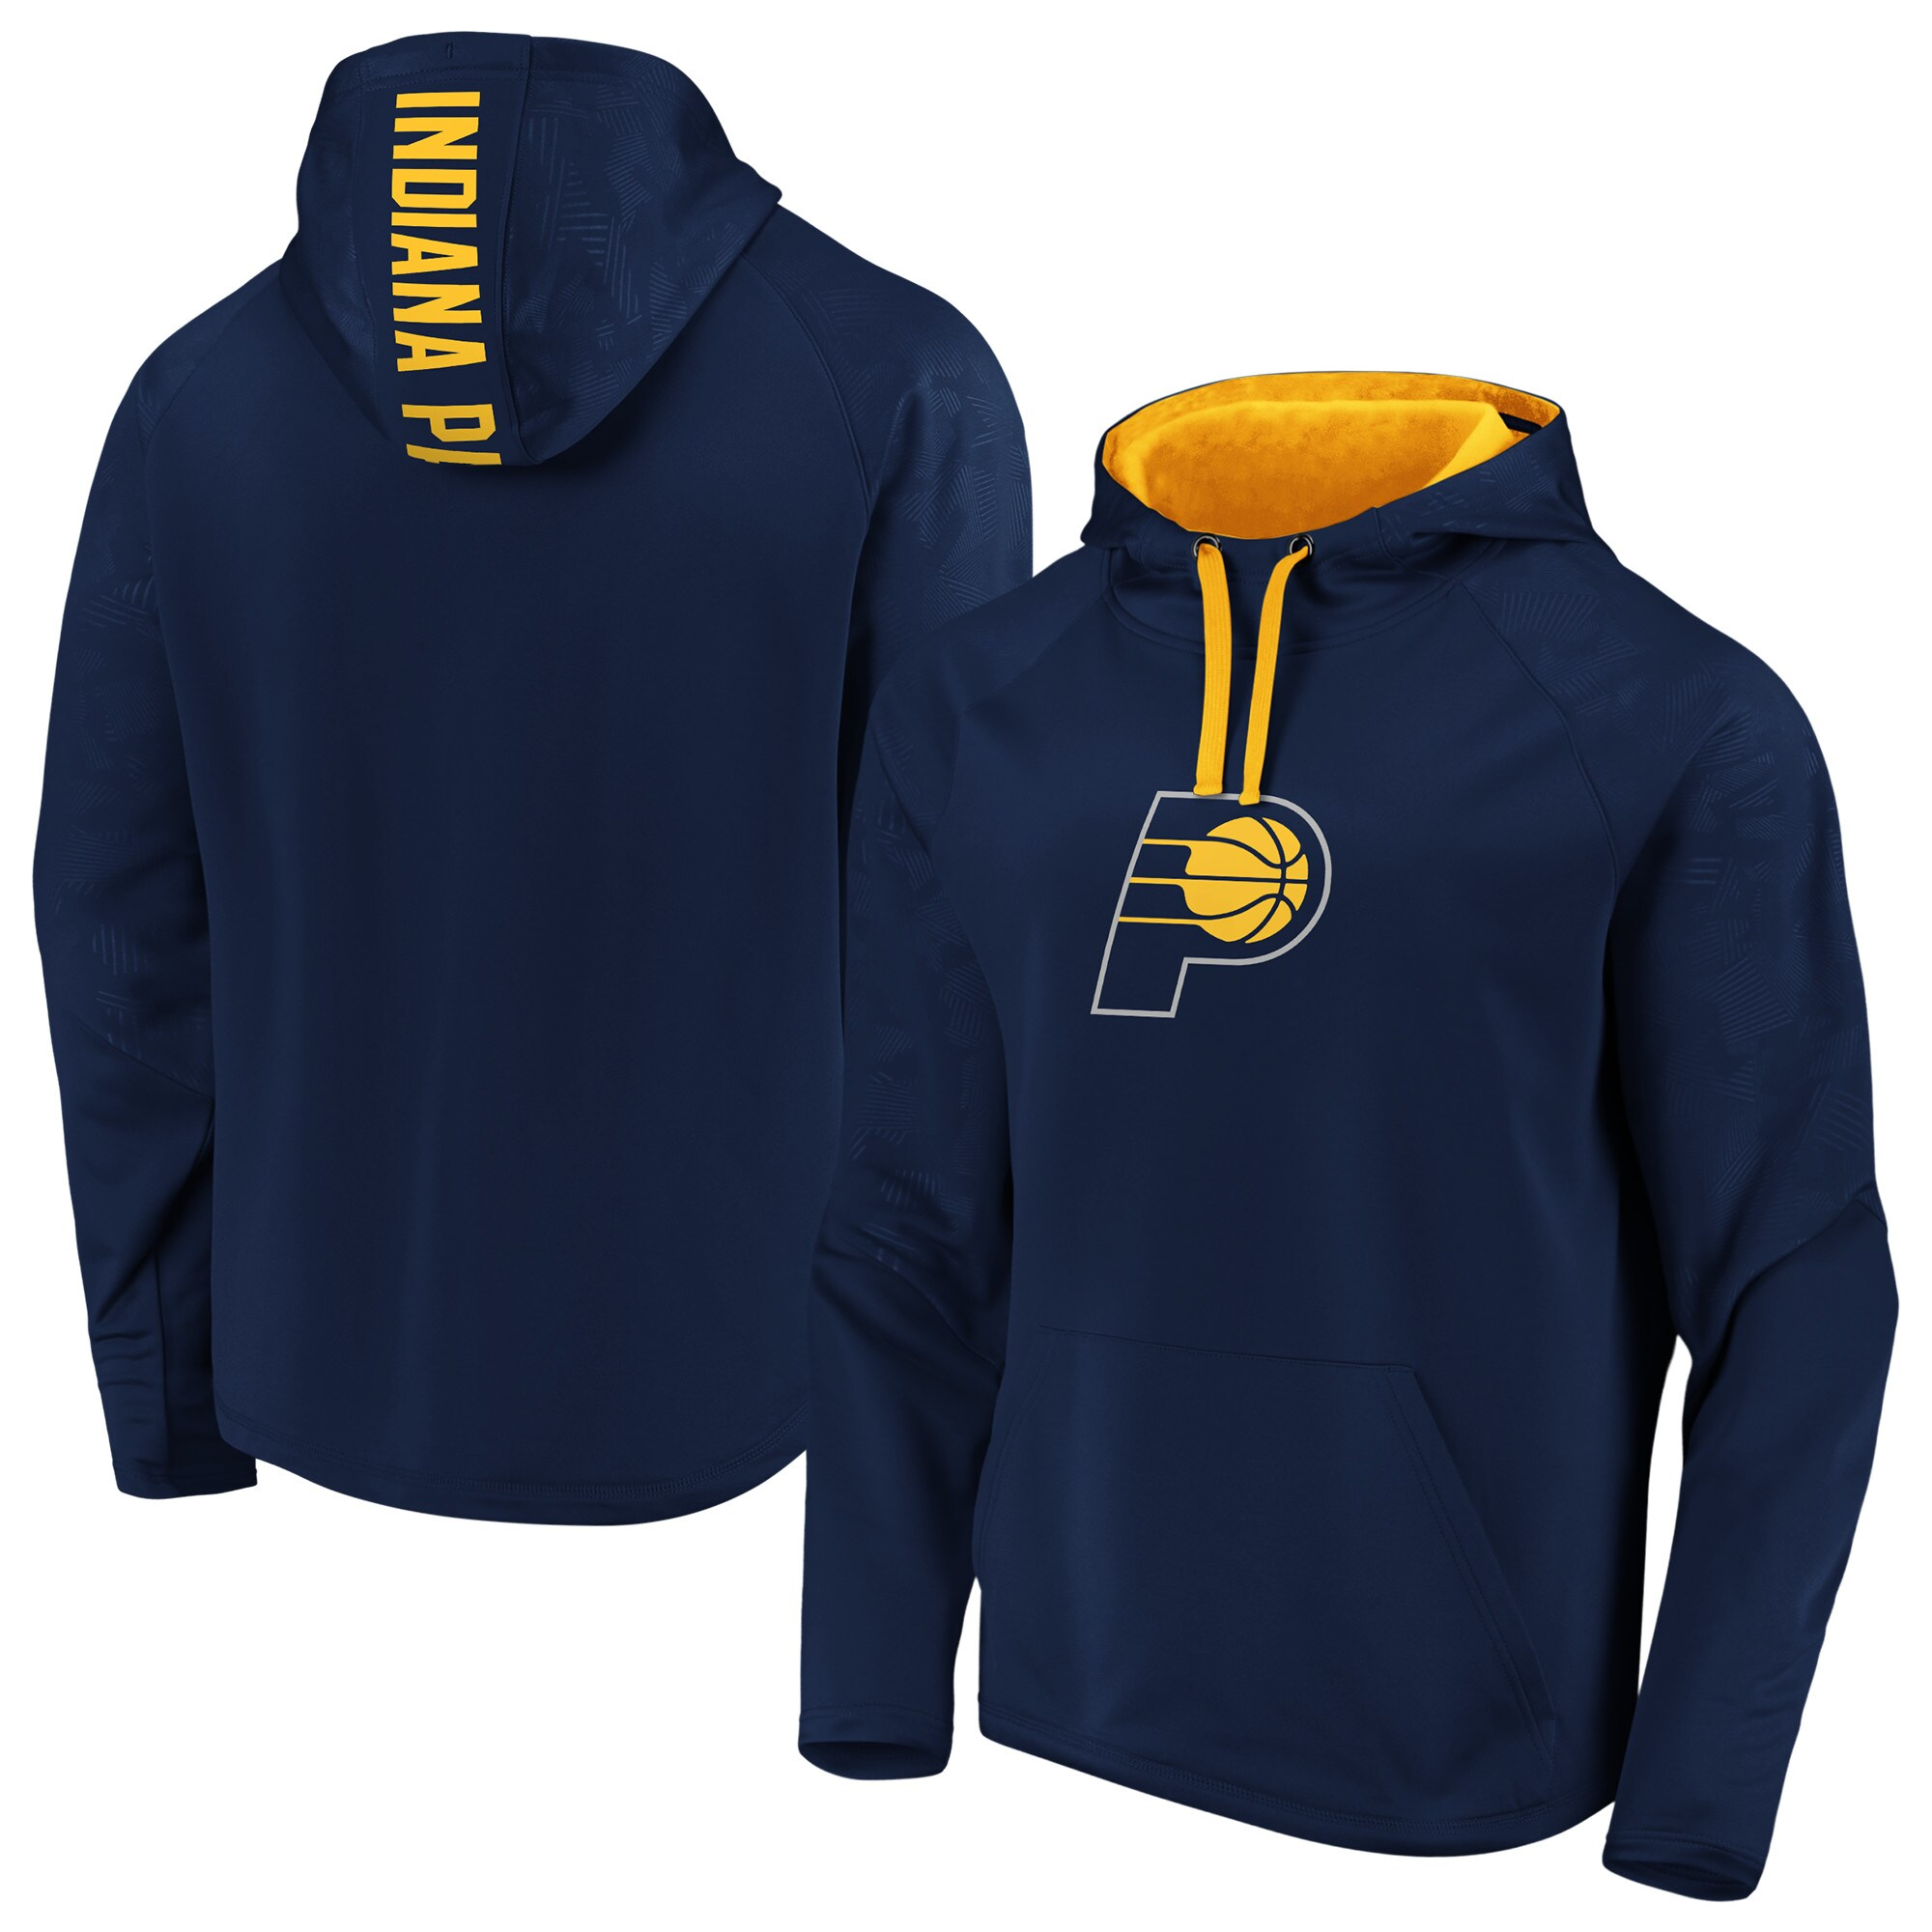 Indiana Pacers Fanatics Branded Iconic Defender Performance Primary Logo Pullover Hoodie - Navy/Gold